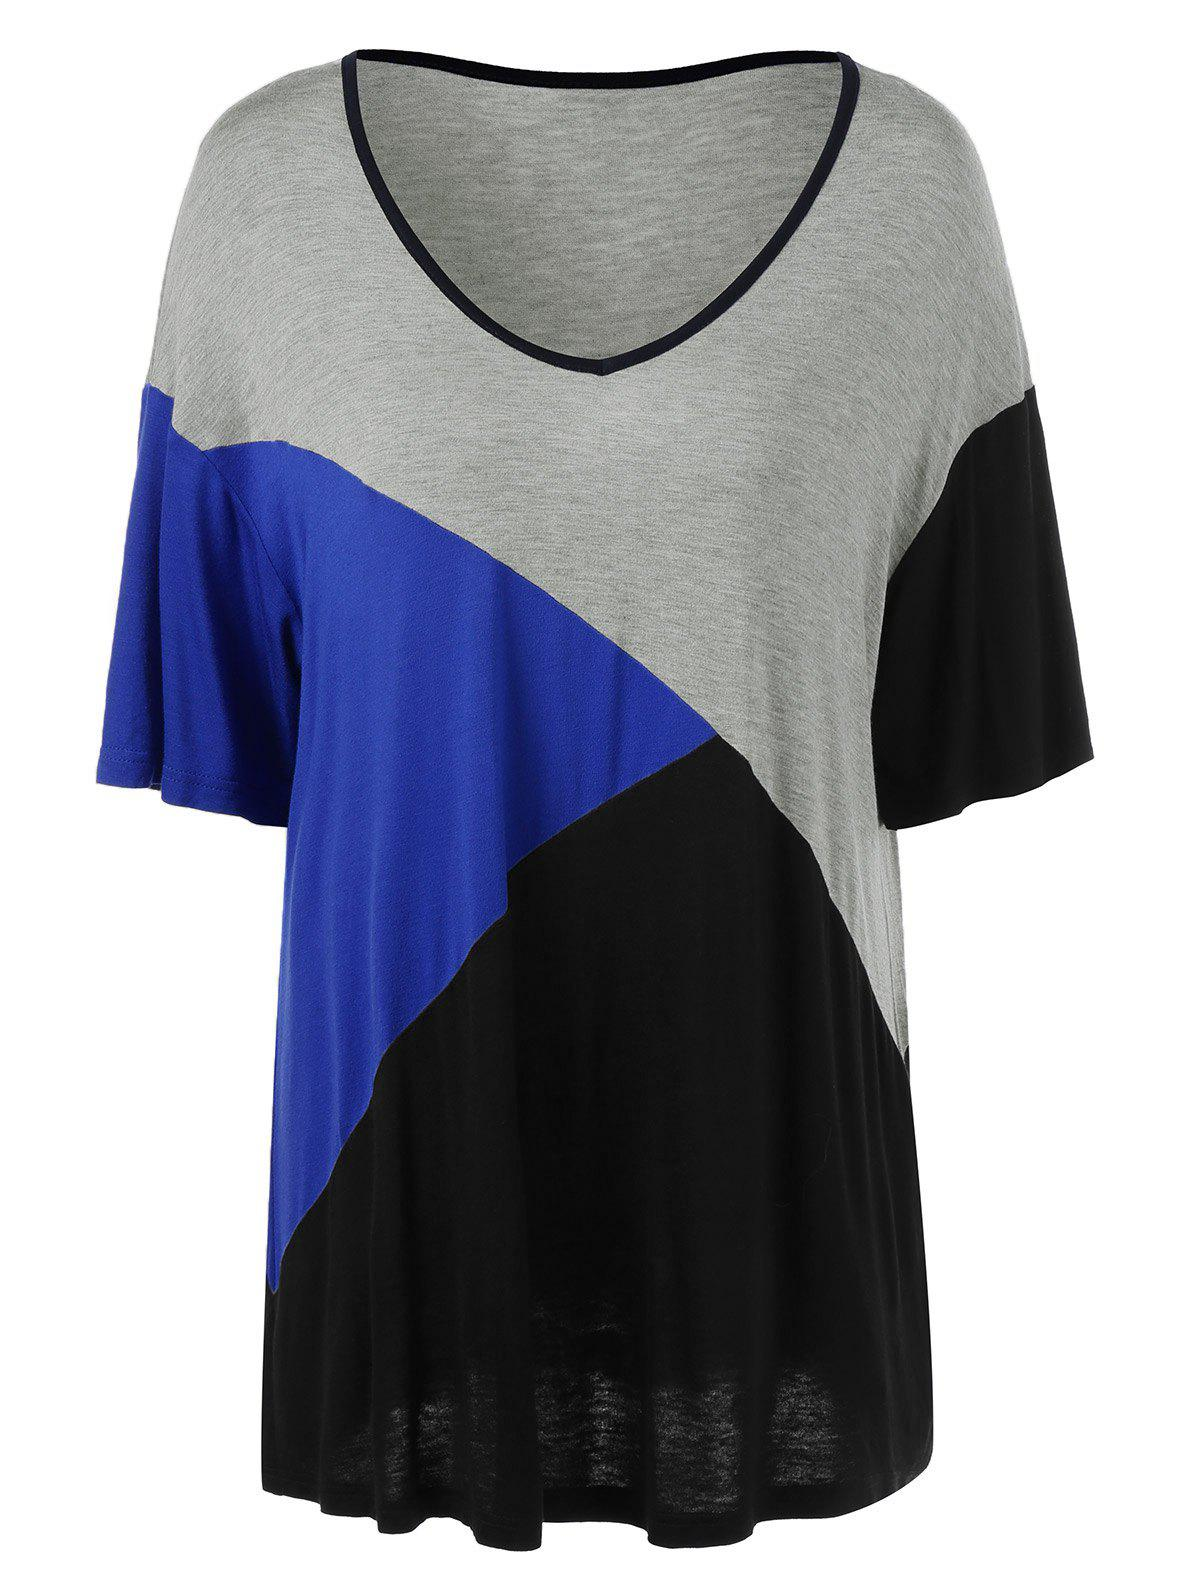 Plus Size Color Block T-shirt palangre Ringer - multicolorcolore XL